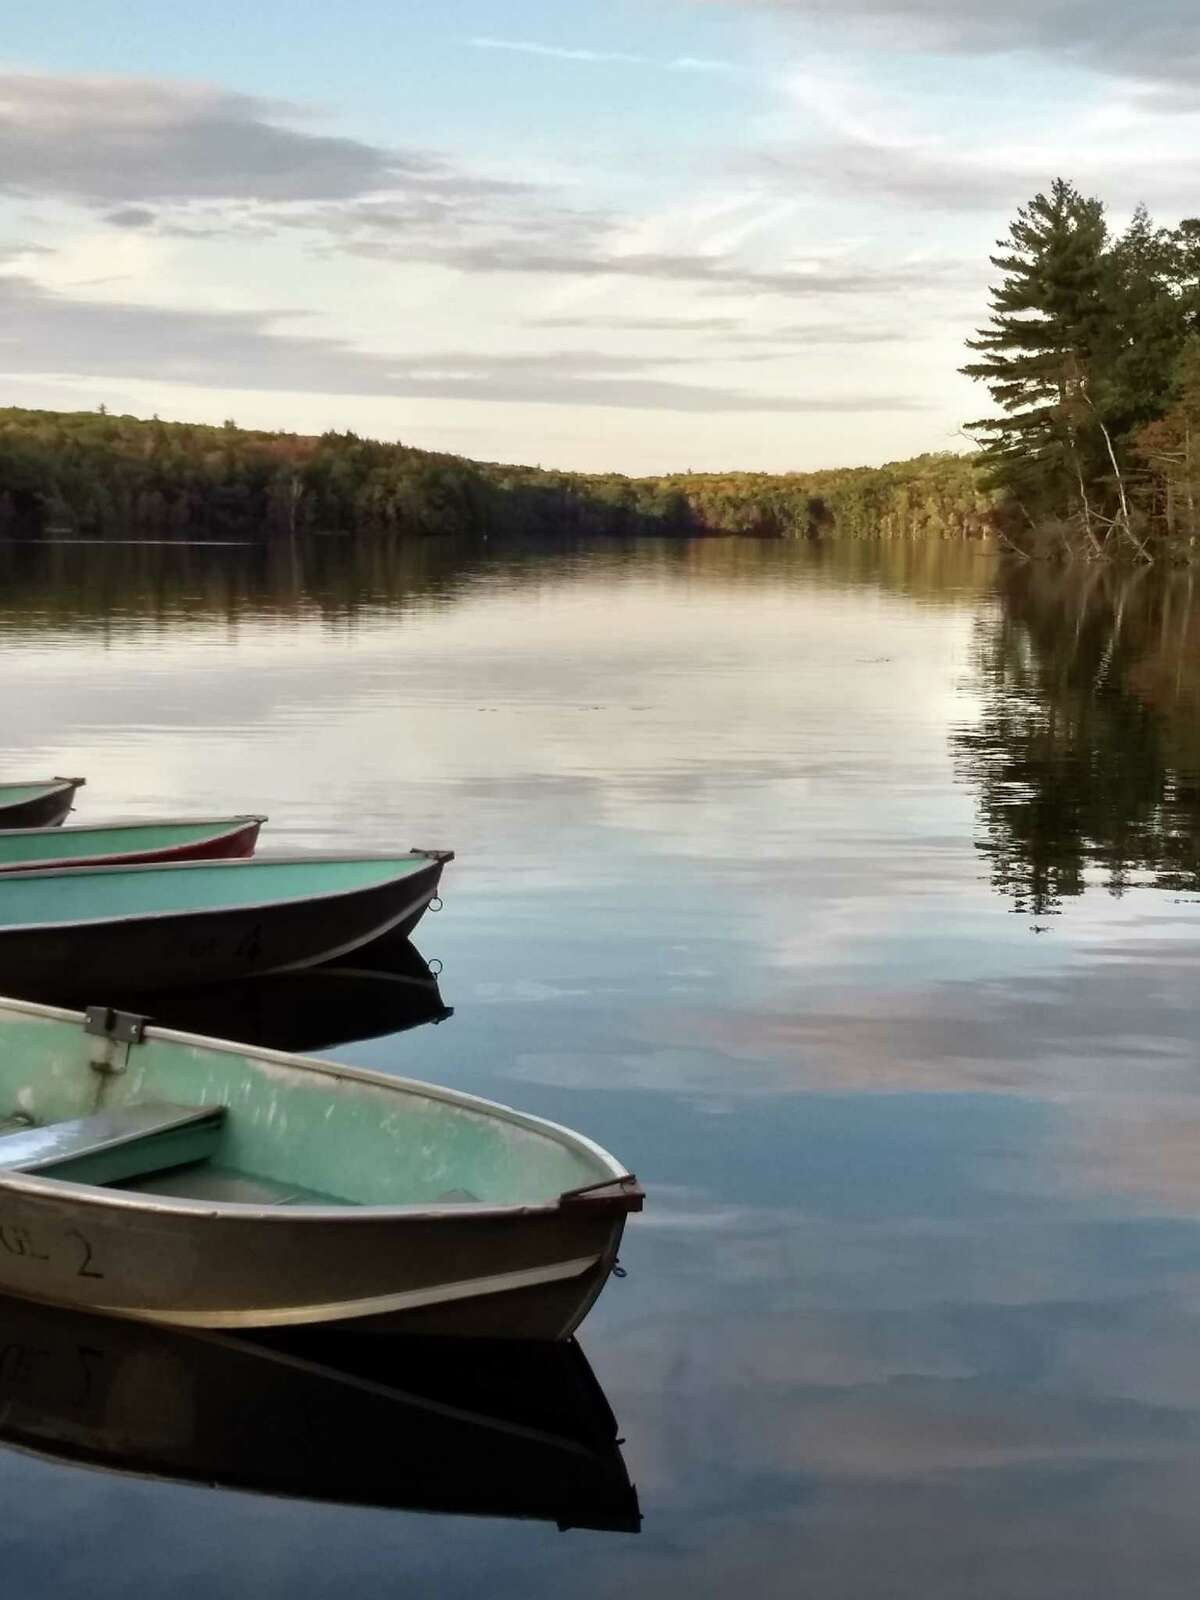 Cindy Conley of Castleton-on-Hudson came upon a peaceful late September afternoon at Grafton Lakes State Park.